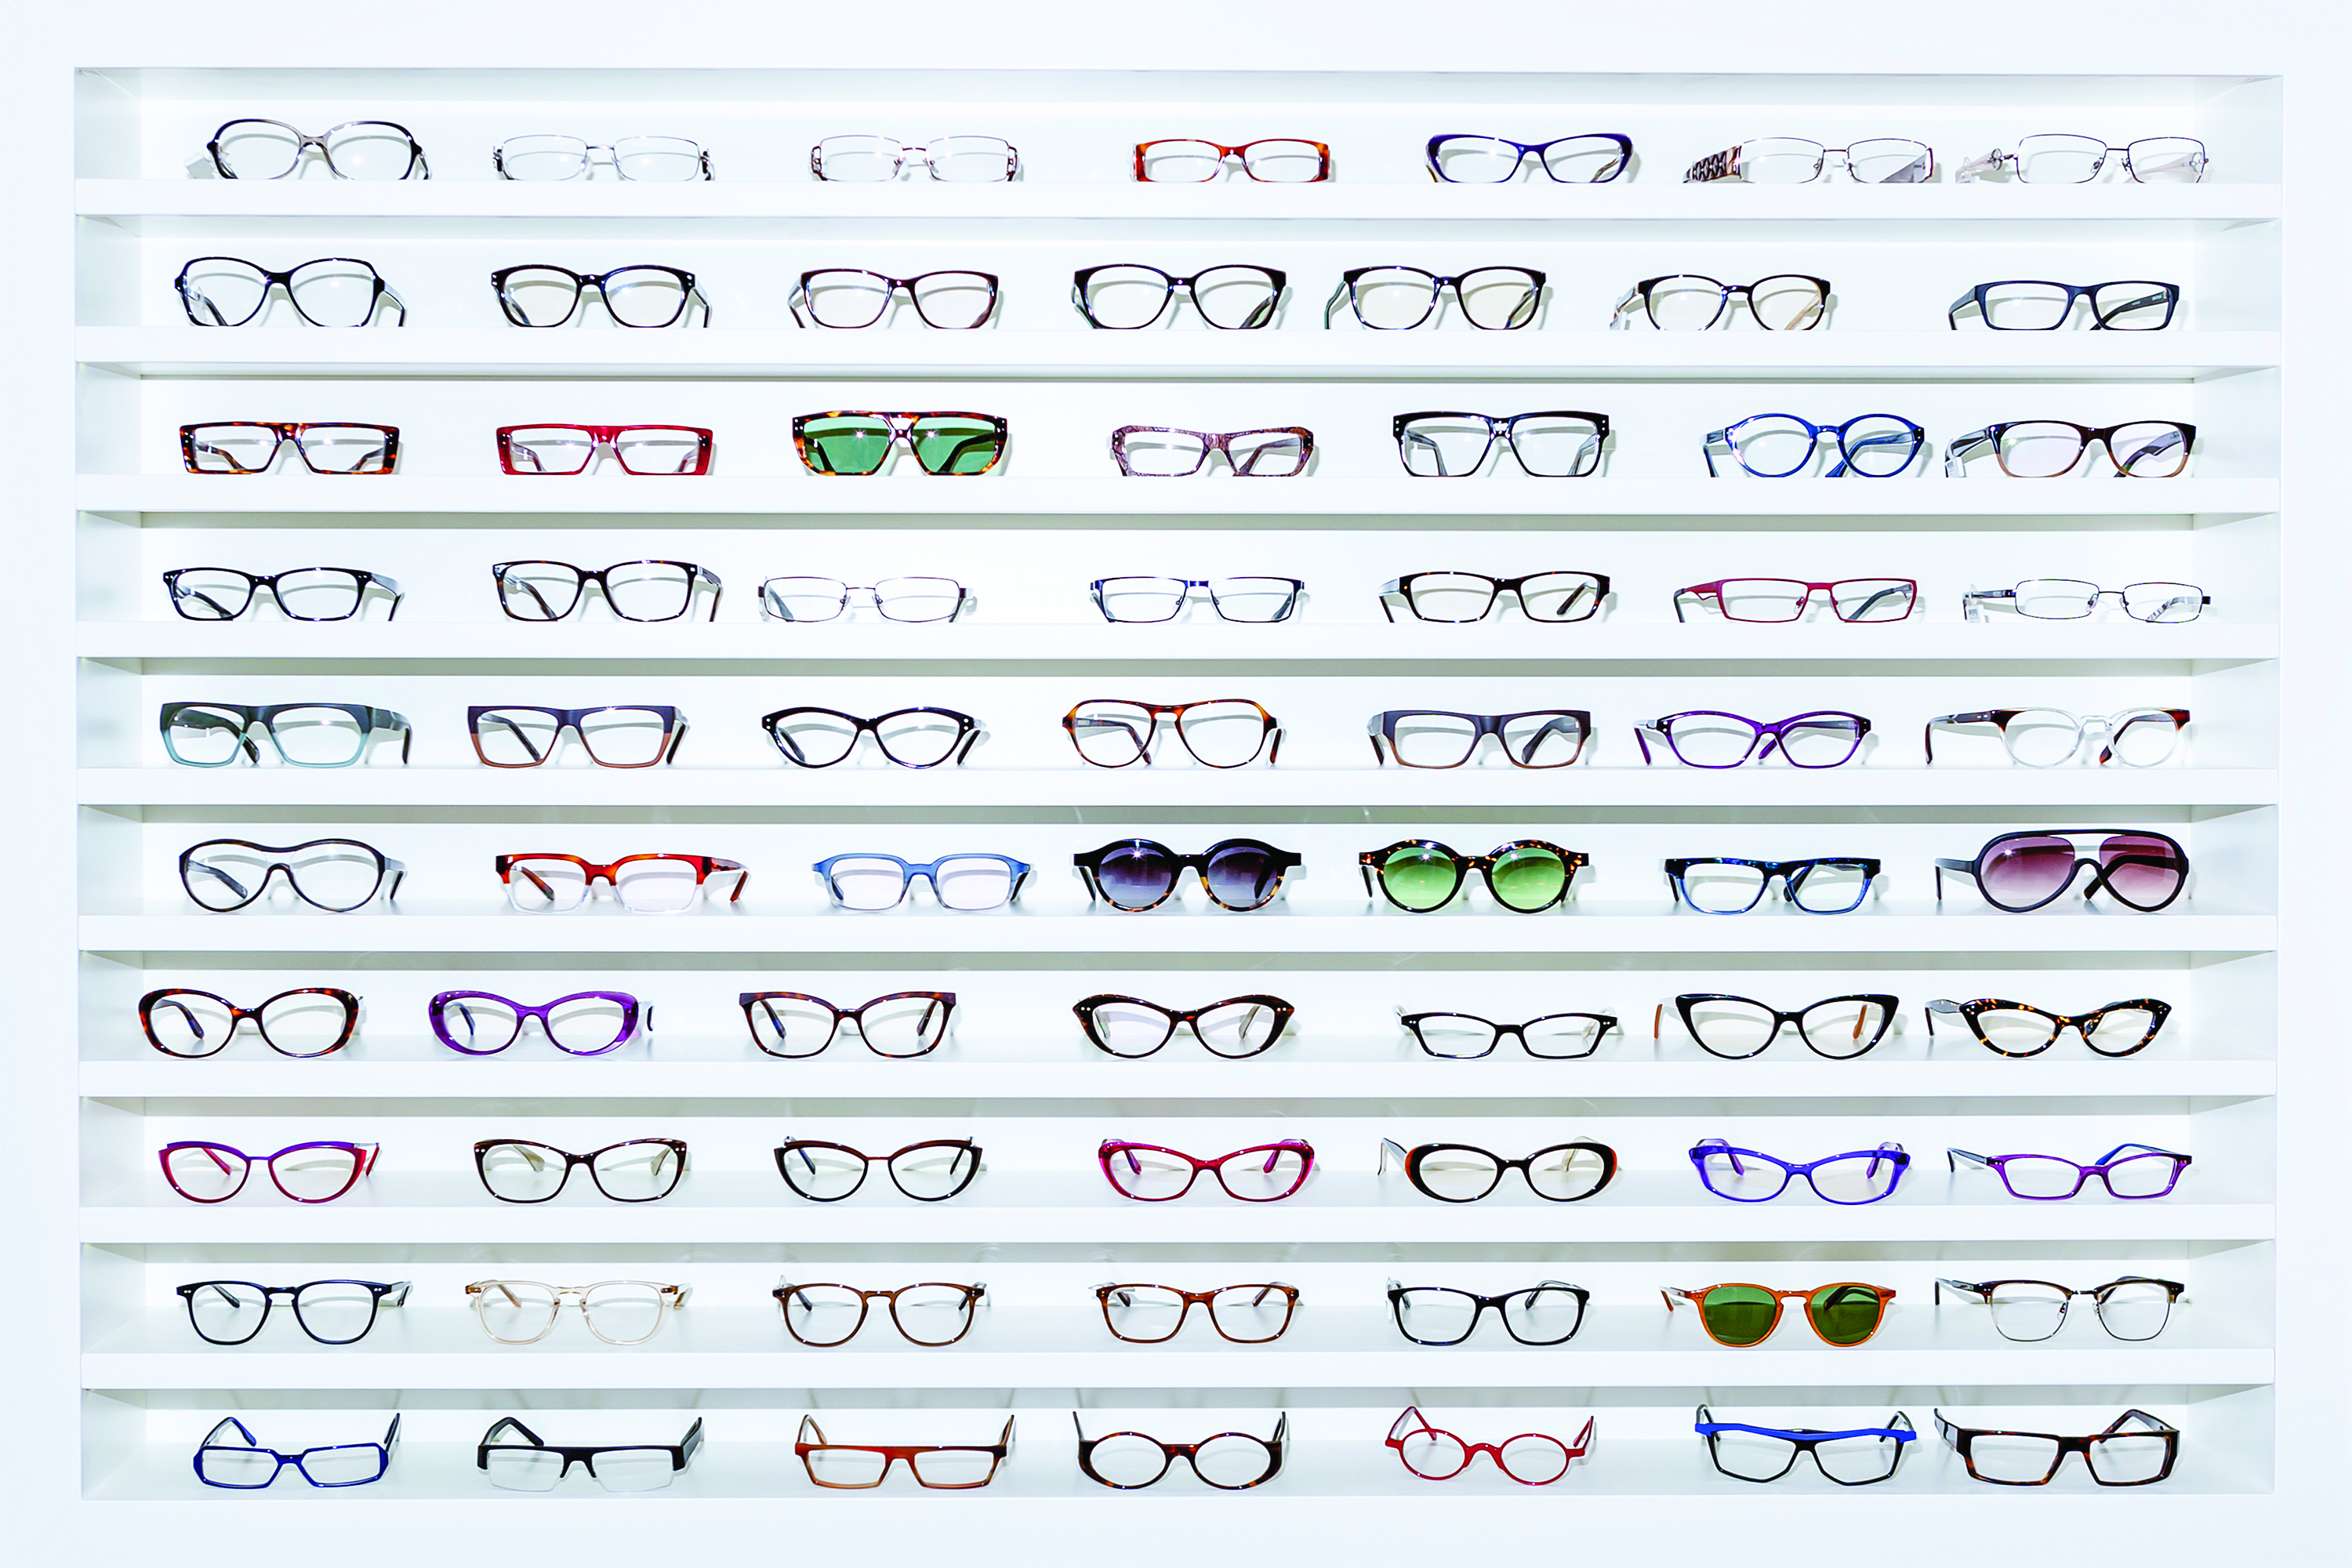 Loss prevention tips for your eyecare business